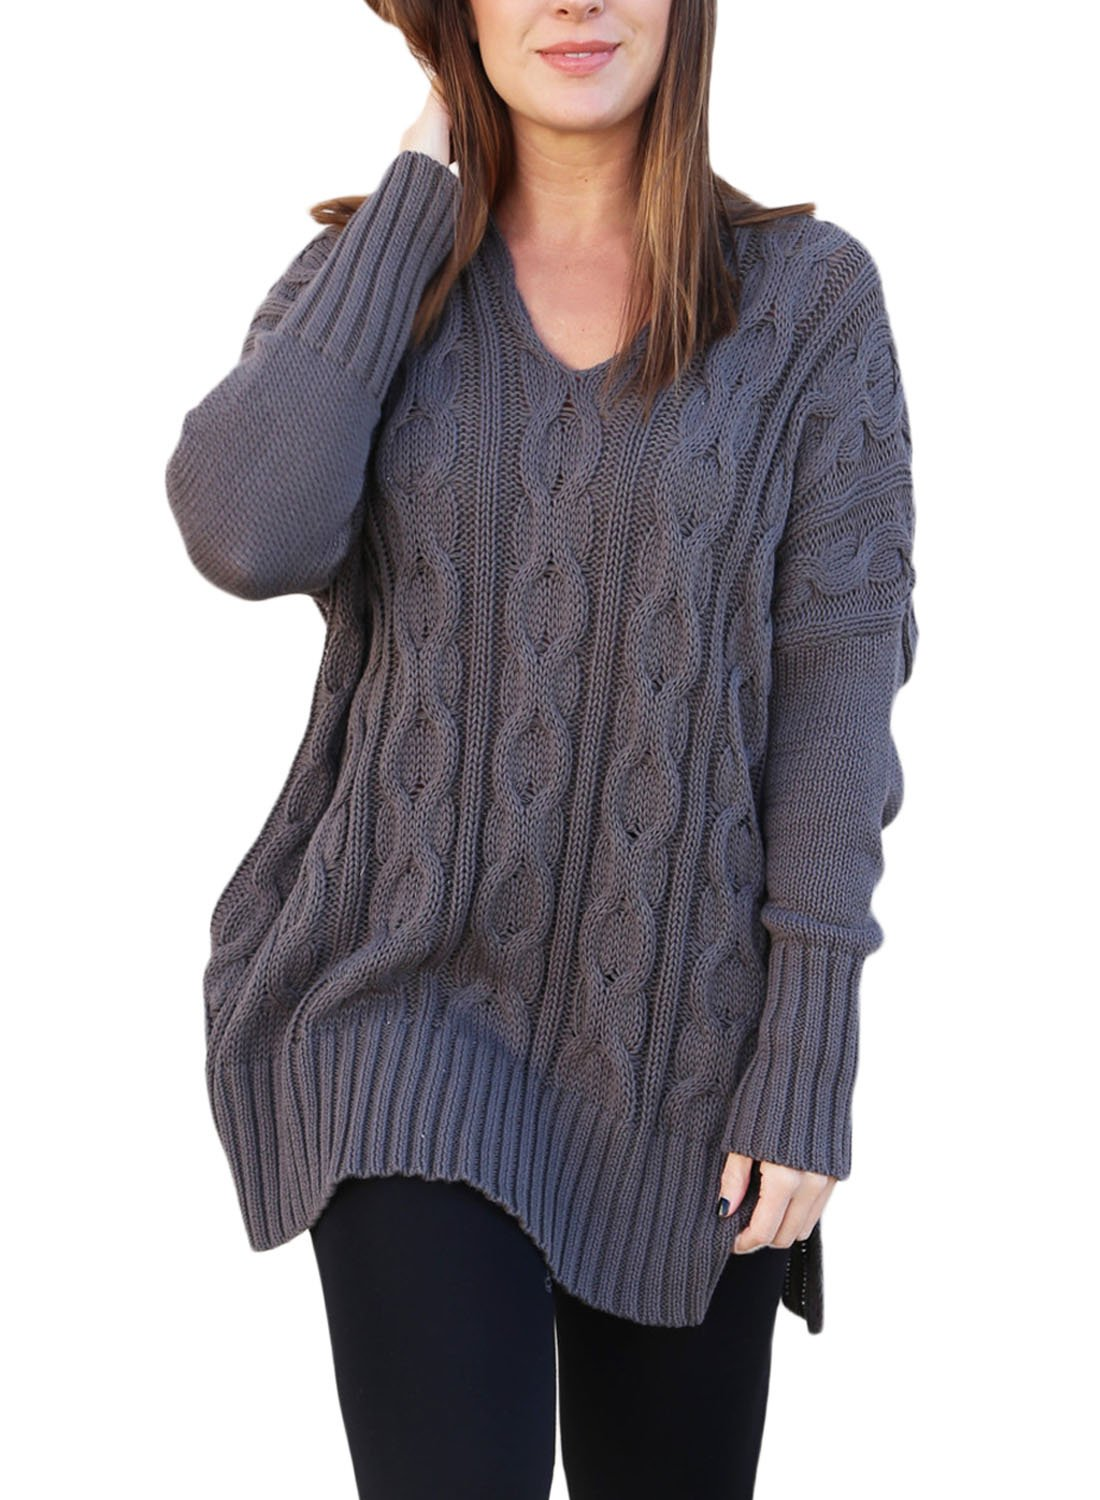 Sidefeel Women Casual V Neck Loose Fit Knit Sweater Pullover Top XX-Large Grey by SIDEFEEL